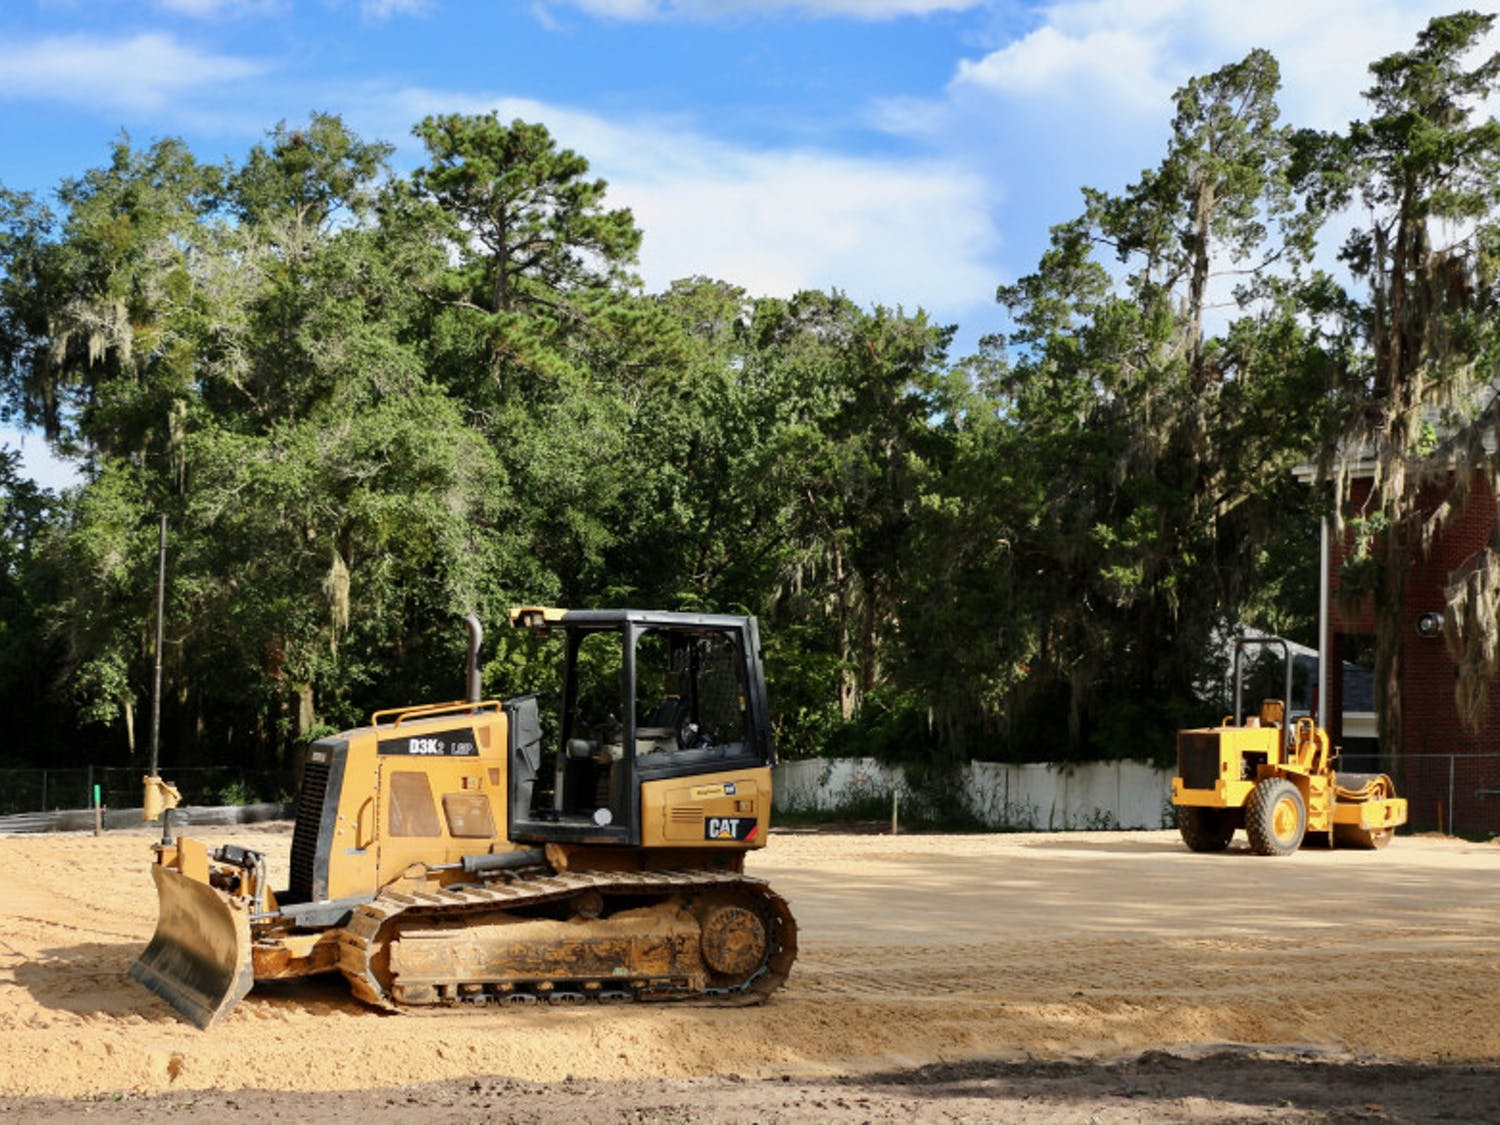 Pi Kappa Phi Fraternity at UF had its former house demolished in July. A new fraternity house will be built at the same location, 11 W. Fraternity Row.